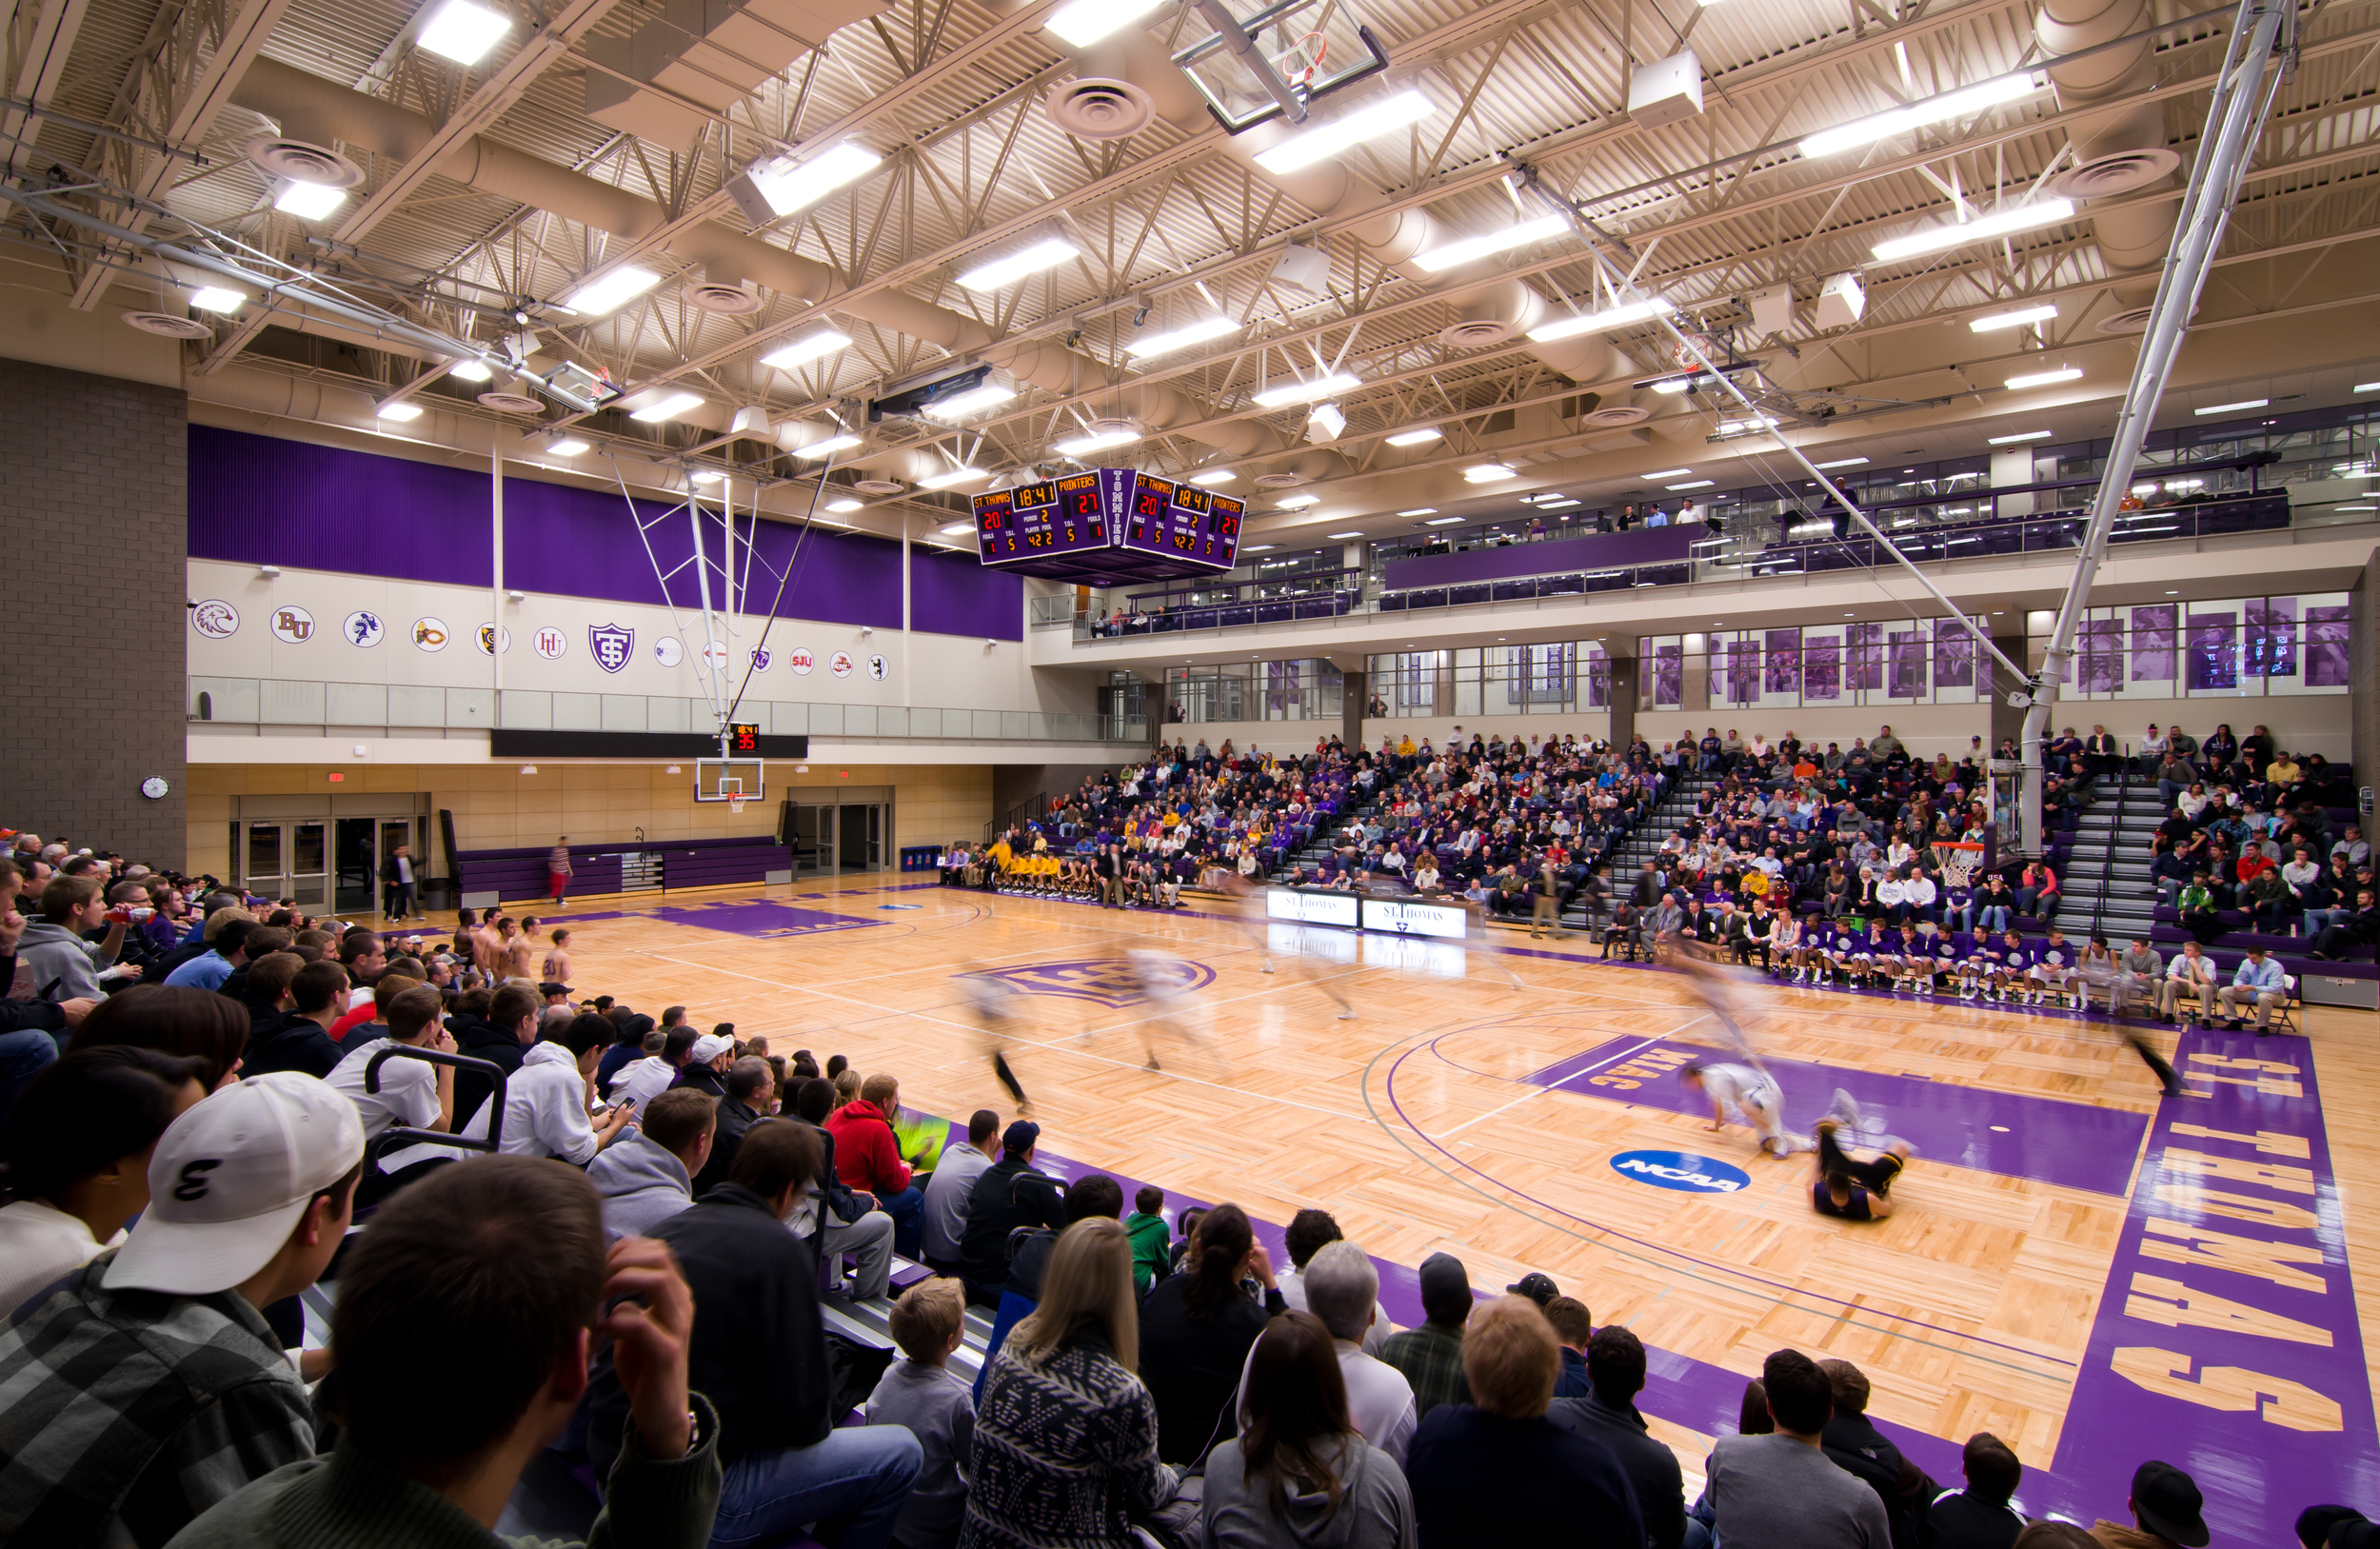 Anderson Athletic Center - Basketball Arena